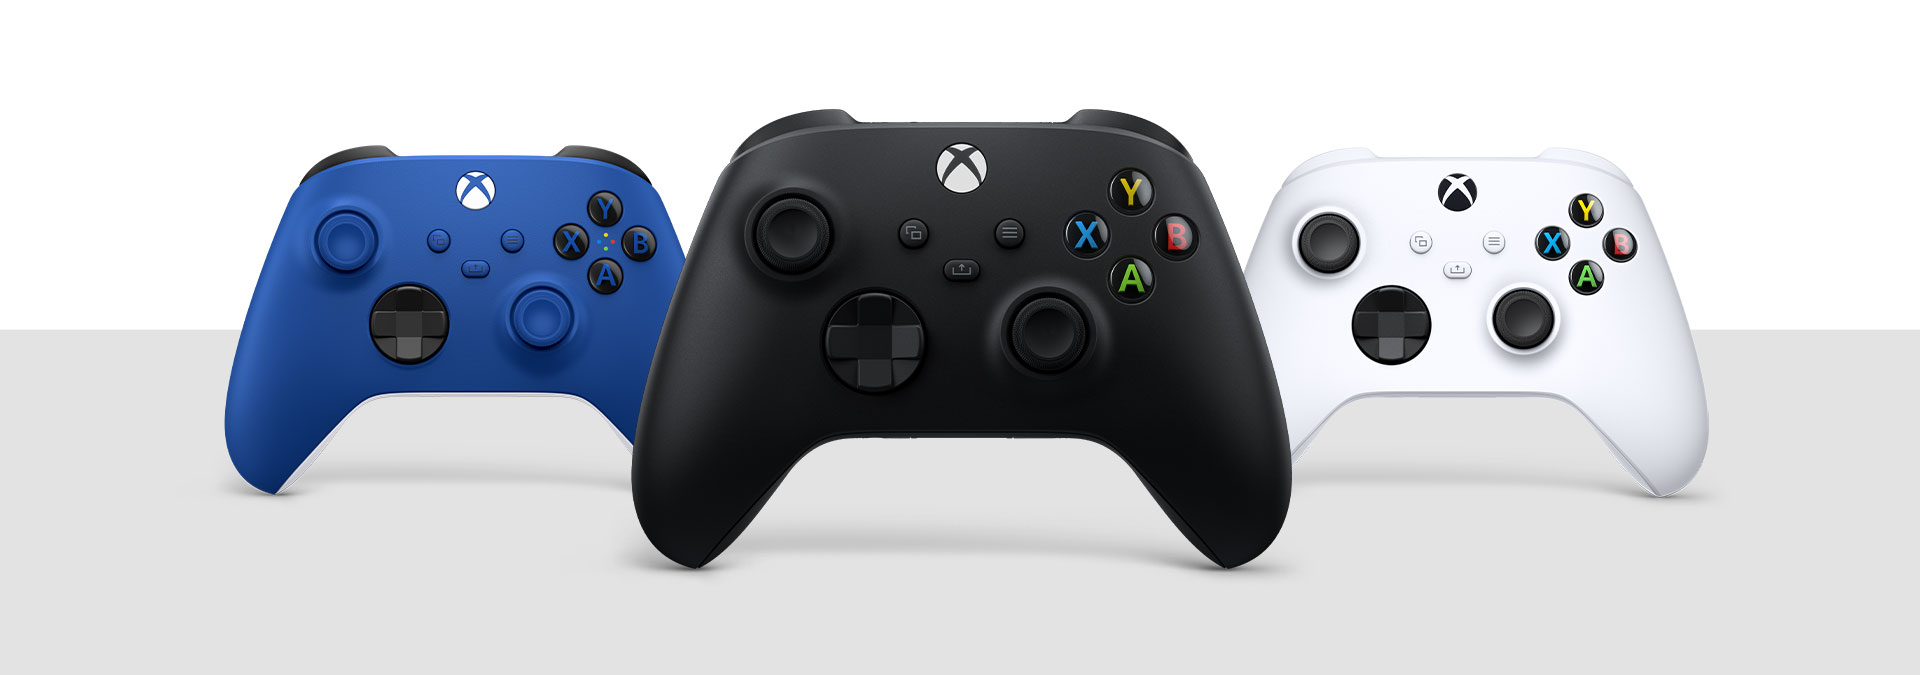 Xbox Wireless Controller Carbon Black, Robot White and Shock Blue